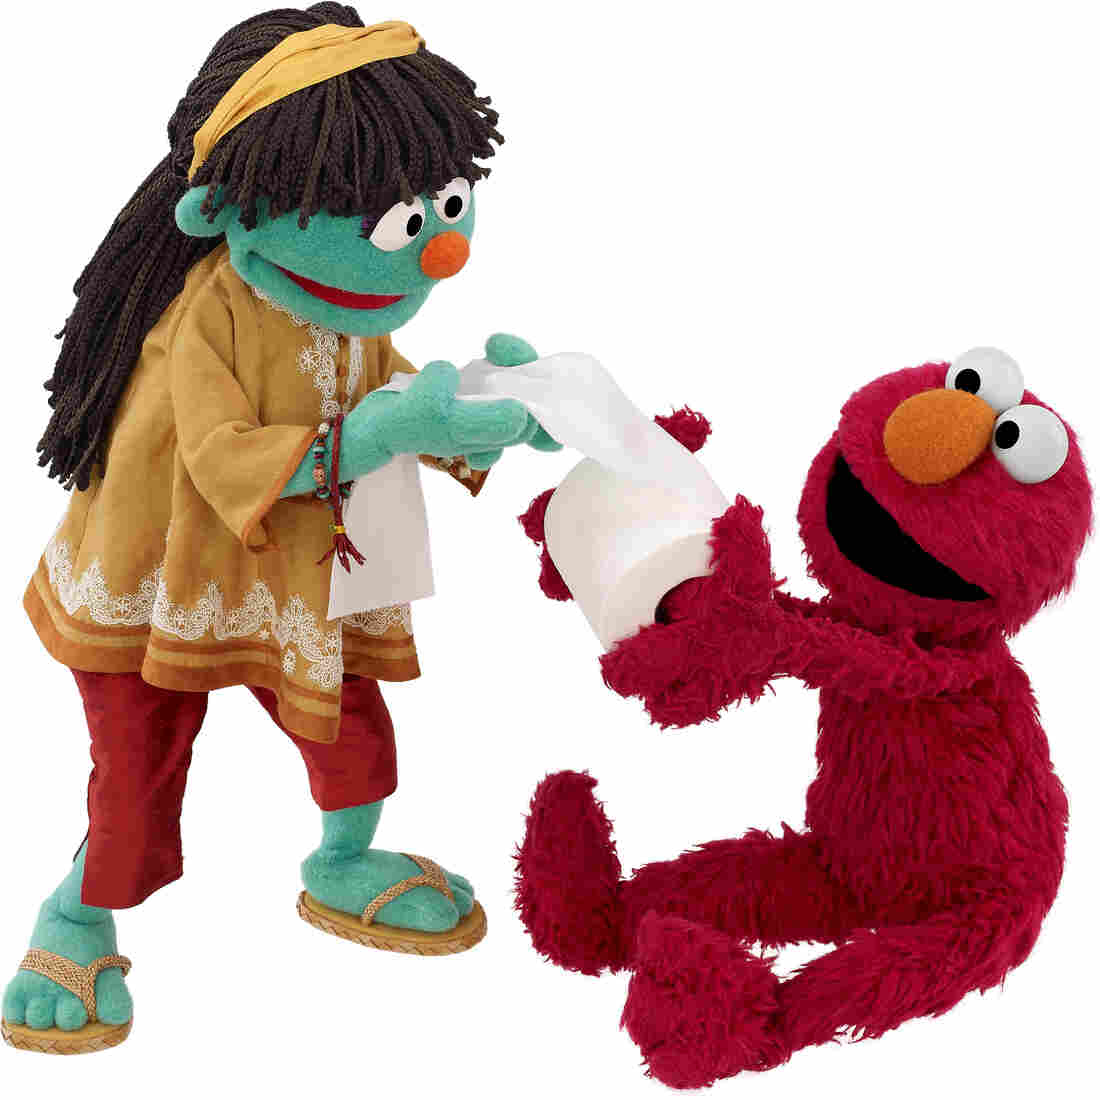 Raya The Muppet Talks About Poop And Is Proud Of It